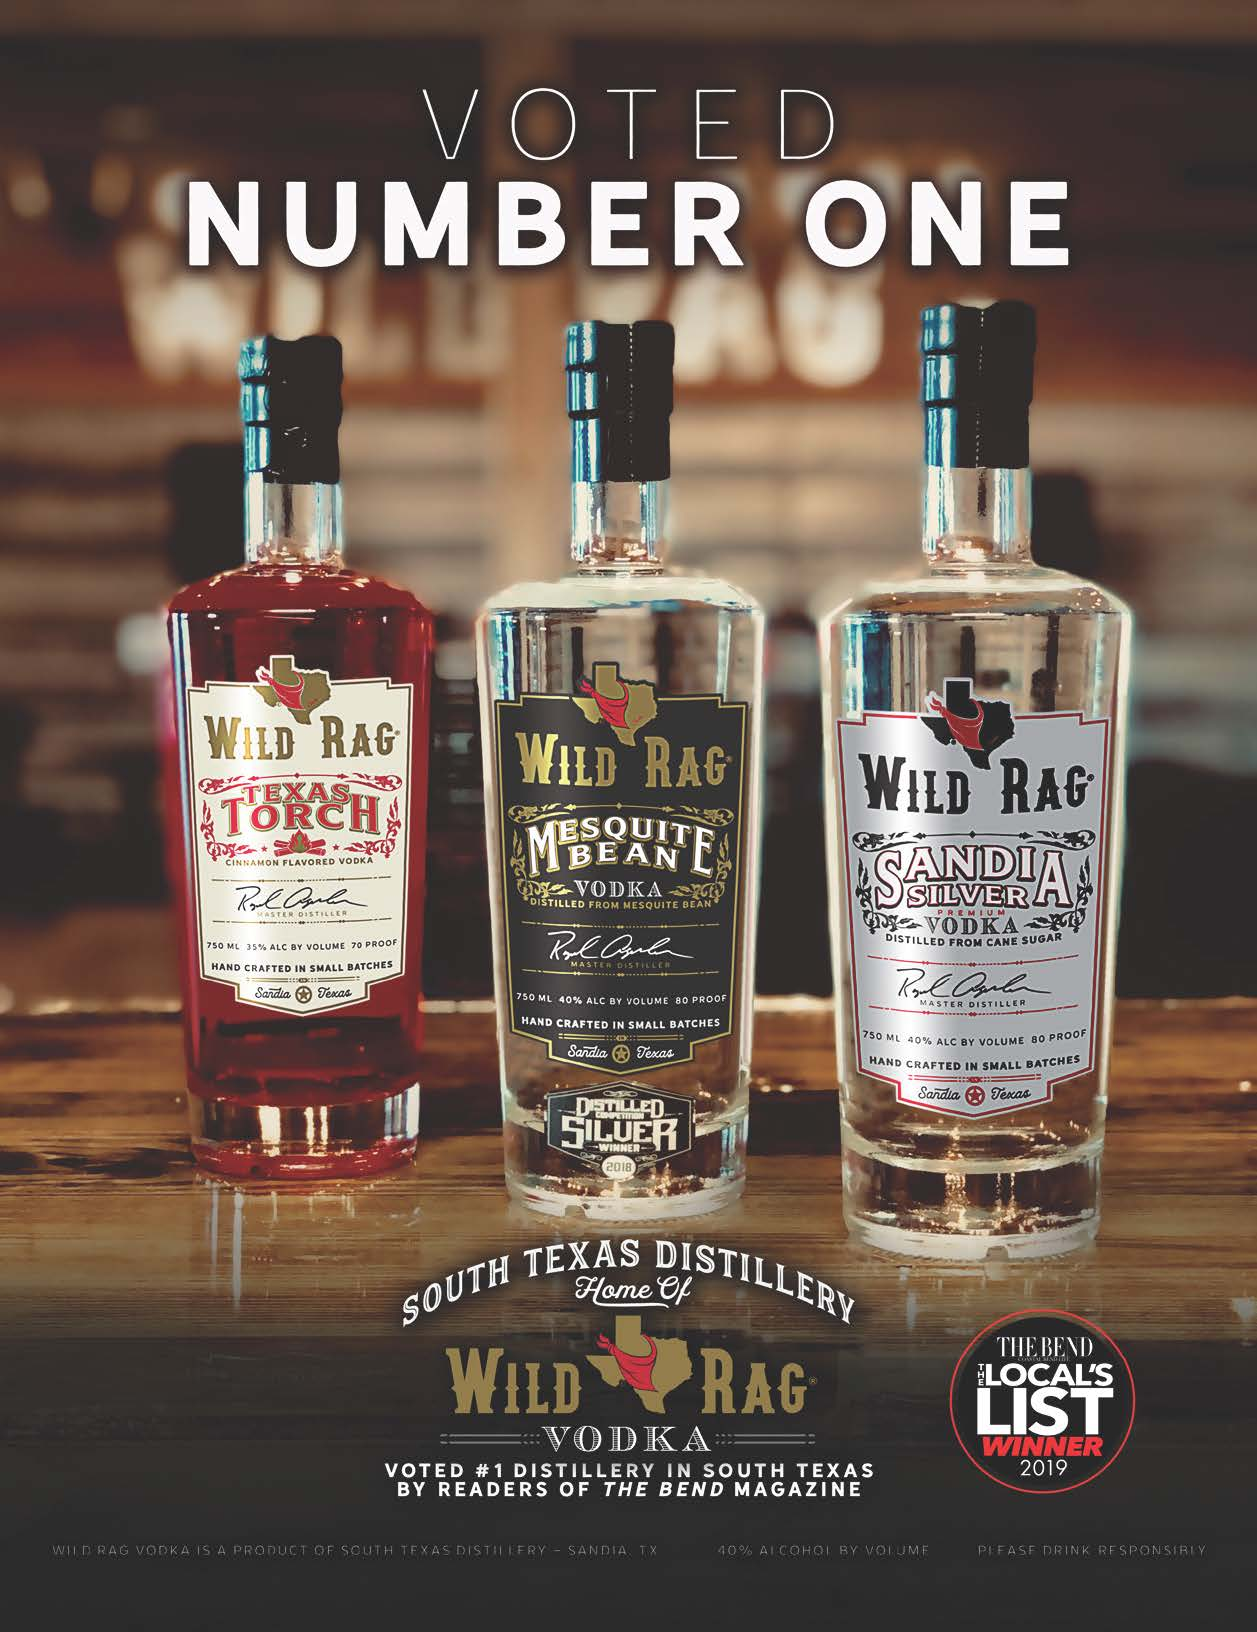 VOTED NUMBER ONE! - On the 3rd Anniversary of Wild Rag Vodka, there's a lot to celebrate this July! The Coastal Bend has chosen Wild Rag Vodka! Plus, here's a sneak peak of the 2019 Wild Rag Vodka Collection soon to be released.The Bend Magazine